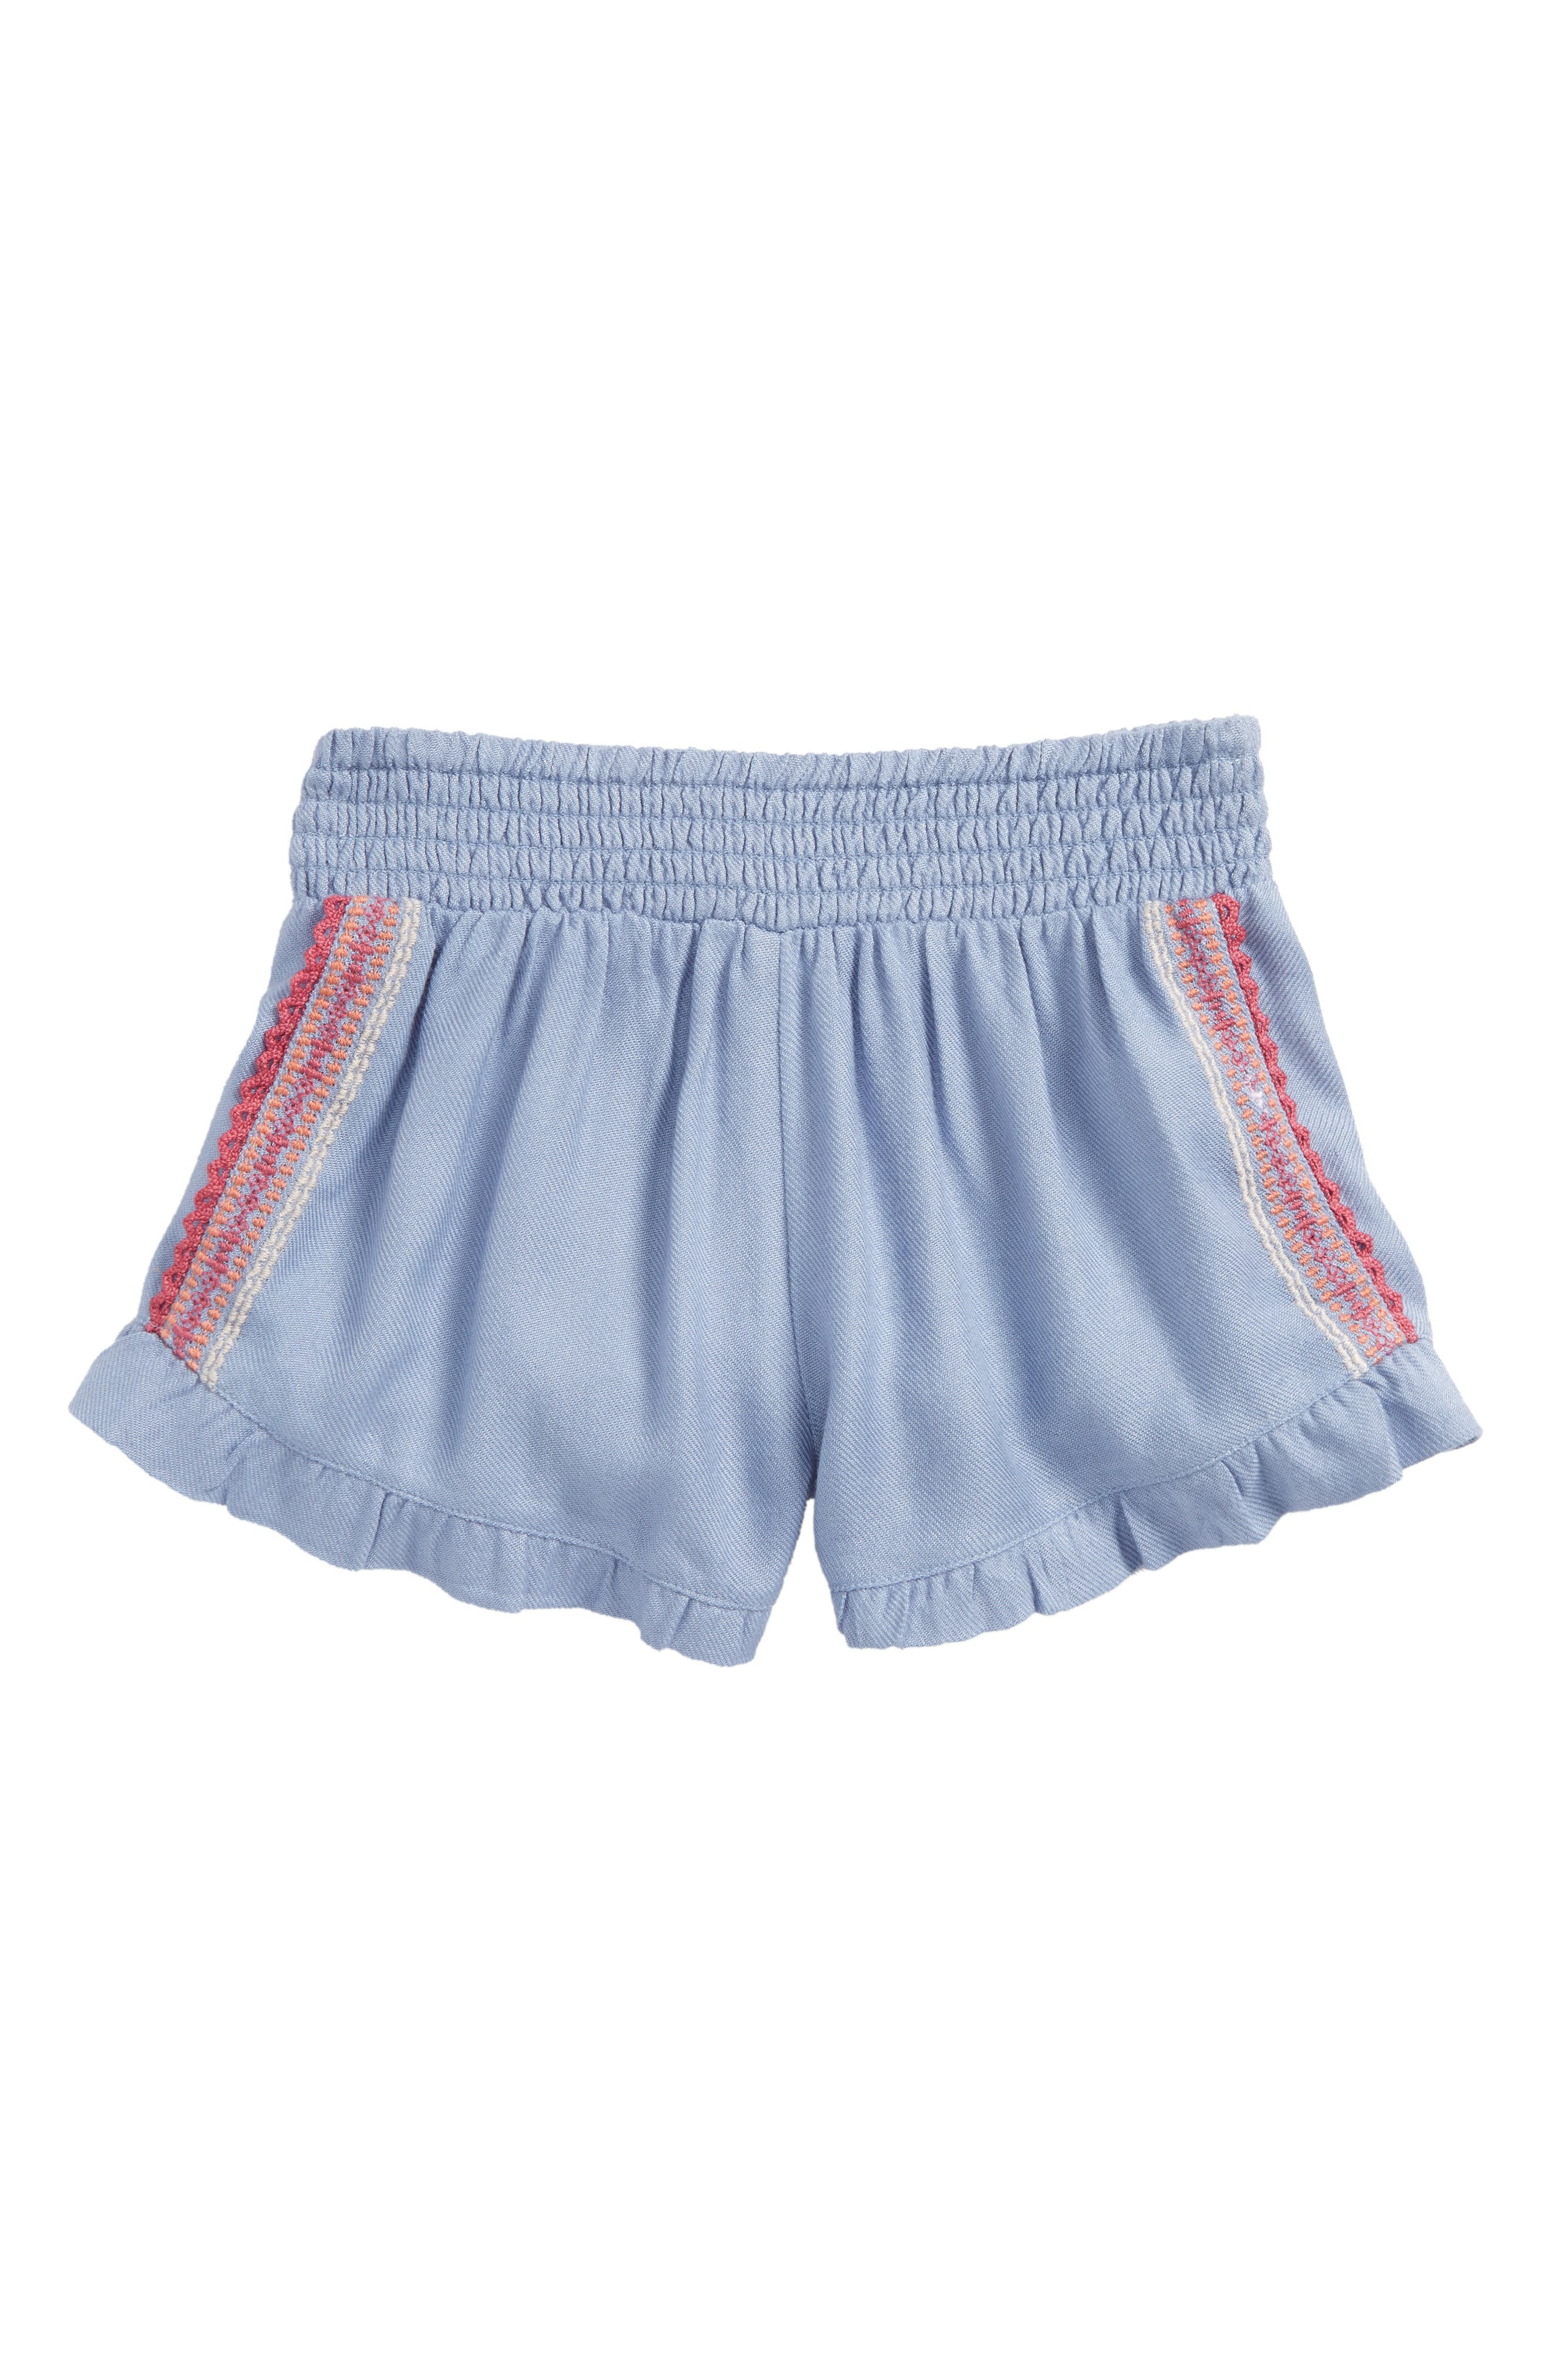 Bay Ruffle Shorts,                         Main,                         color, Bleached Periwinkle